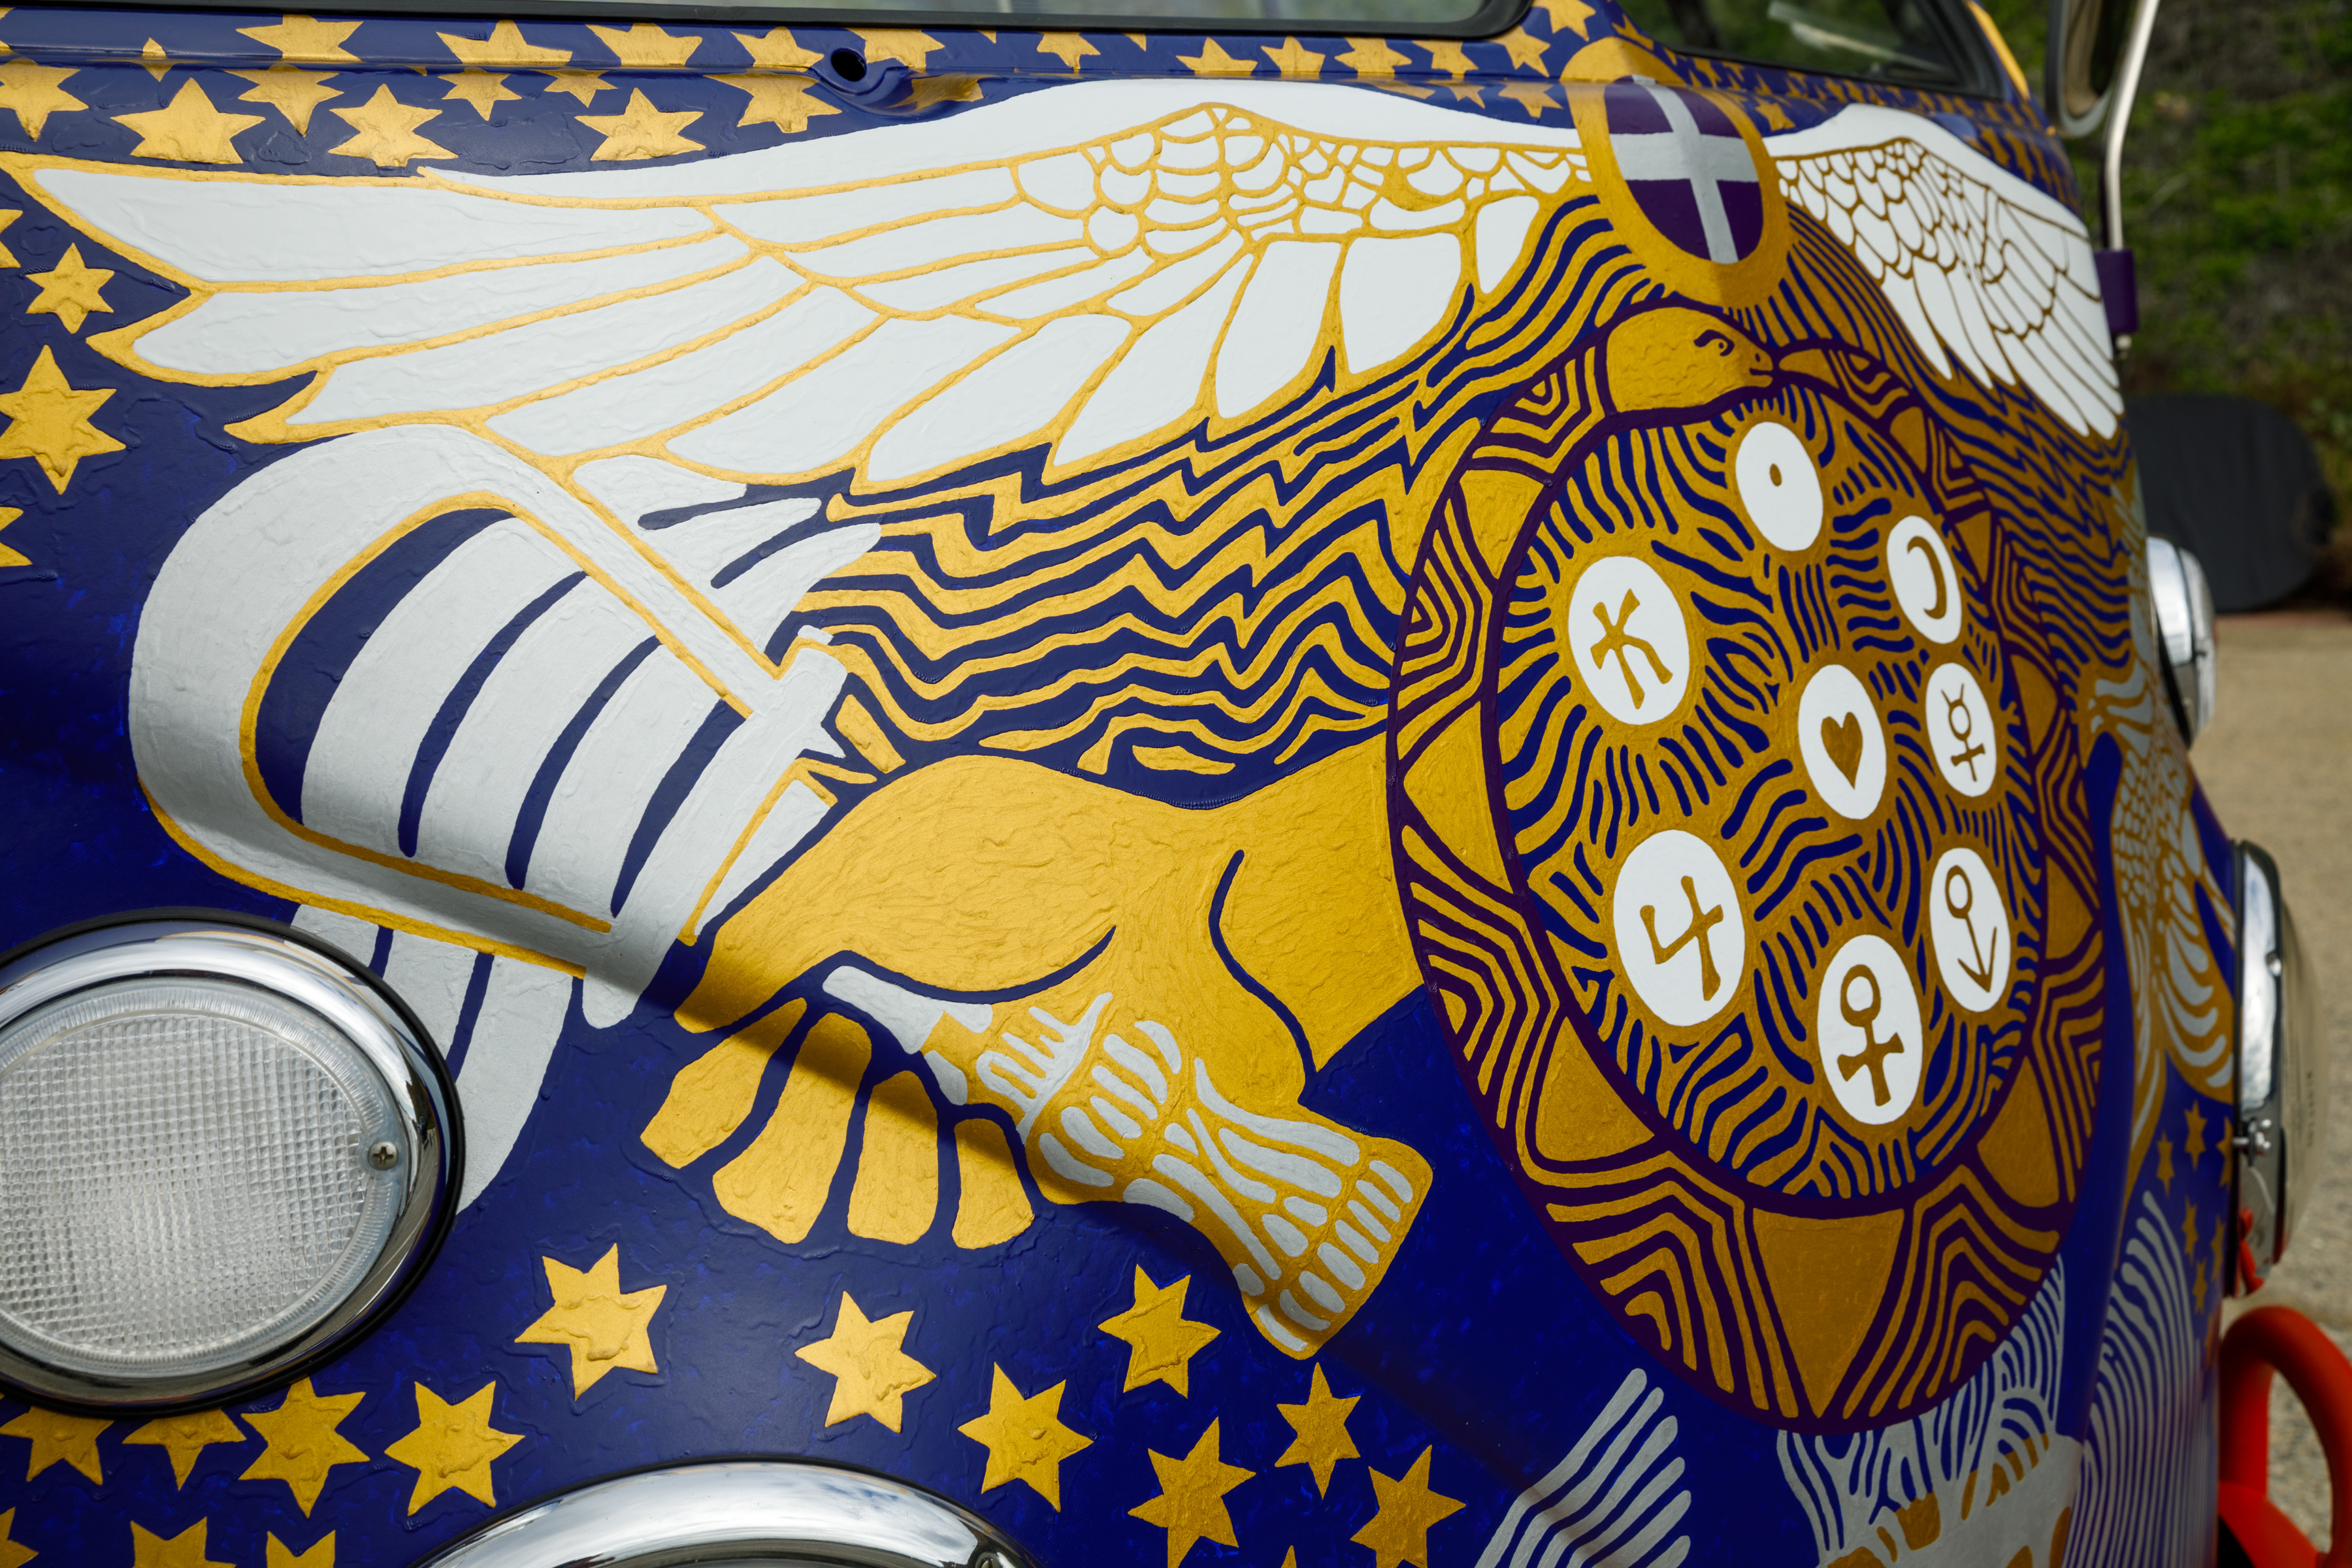 Woodstock, Peace, love and the re-creation of the Woodstock van, ClassicCars.com Journal